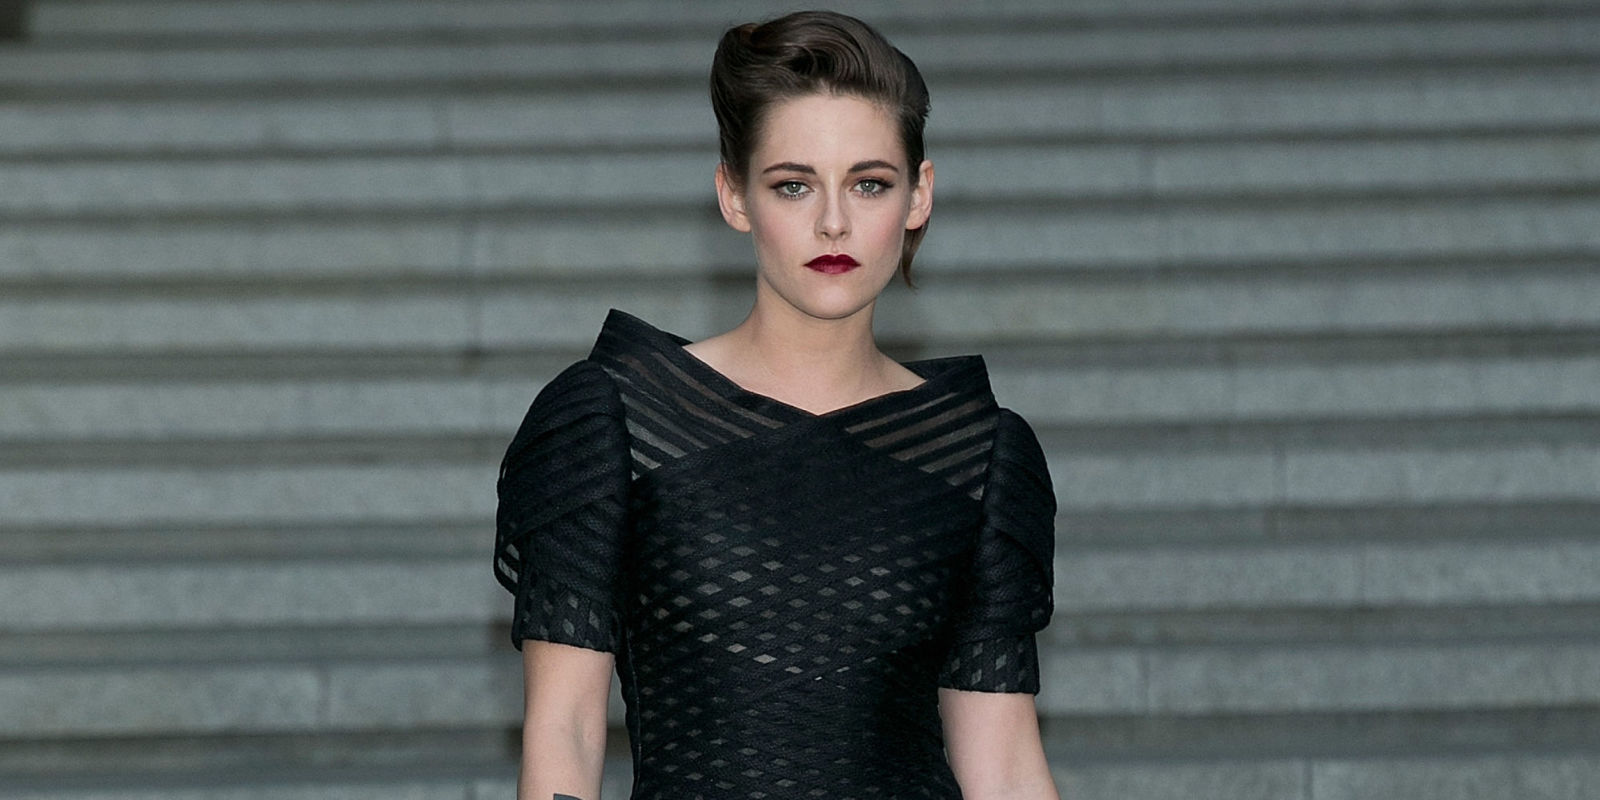 kristen stewart fan essay in defense of loving kristen stewart